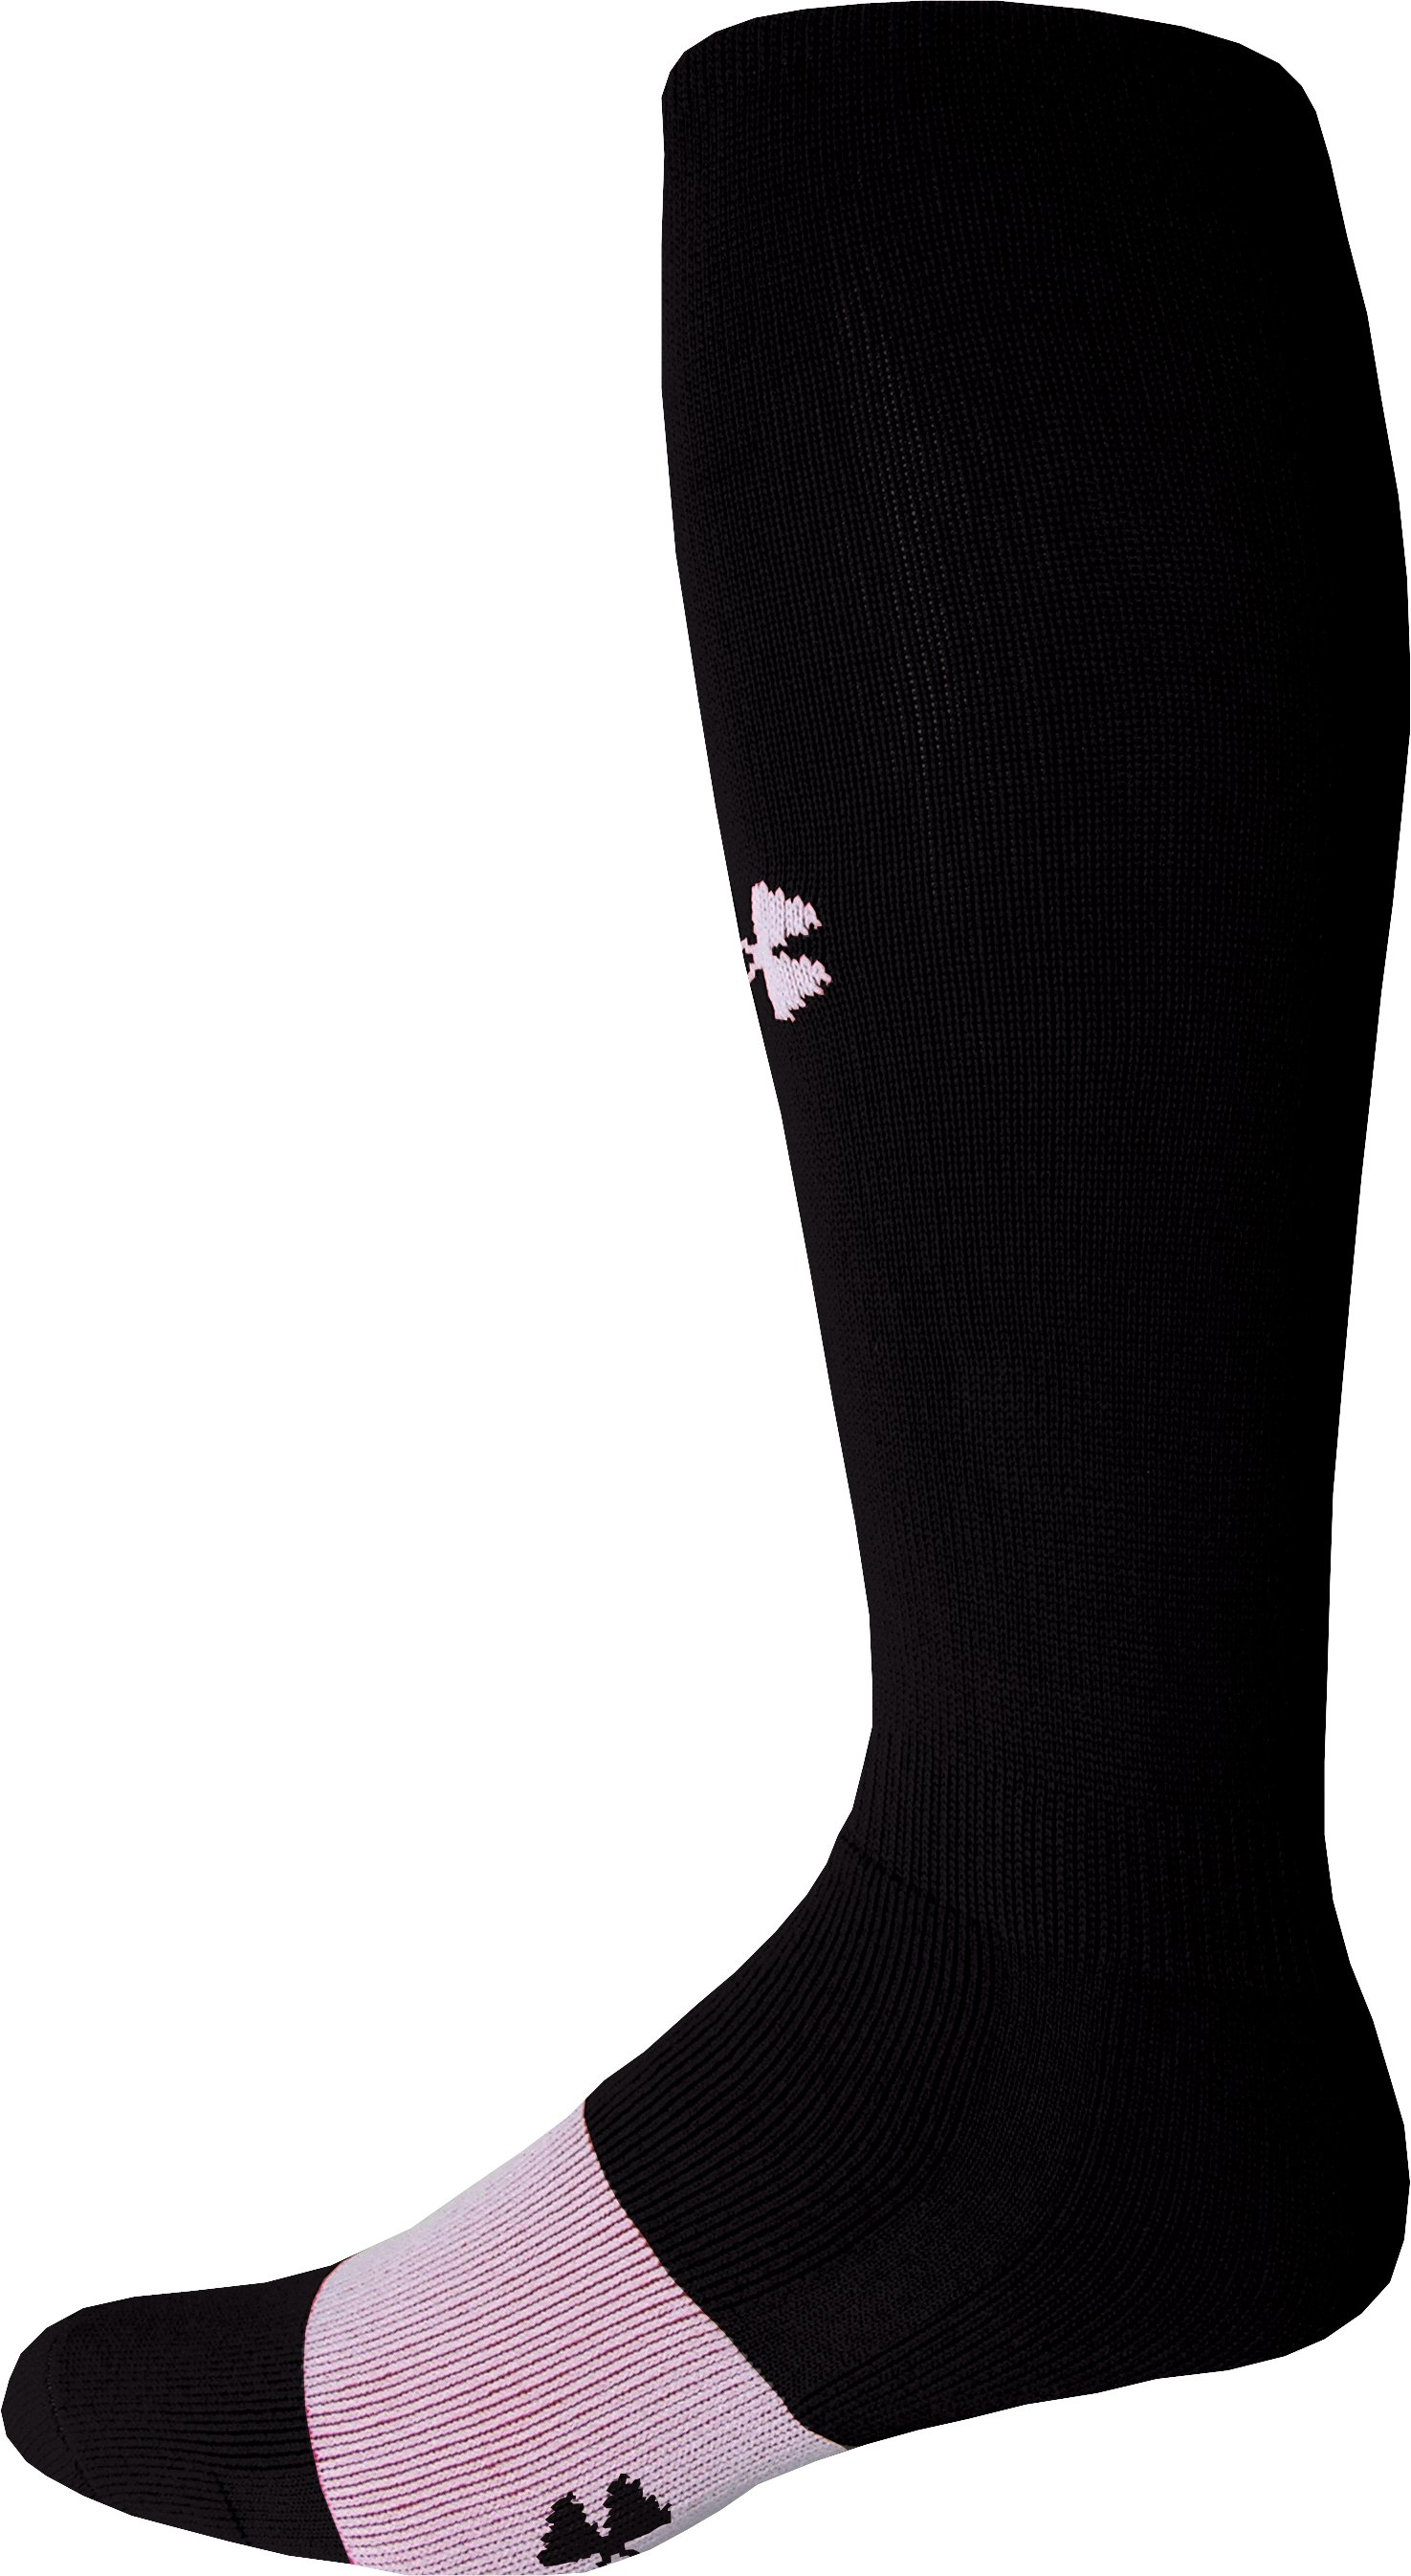 Men's Allsport Sock, Black